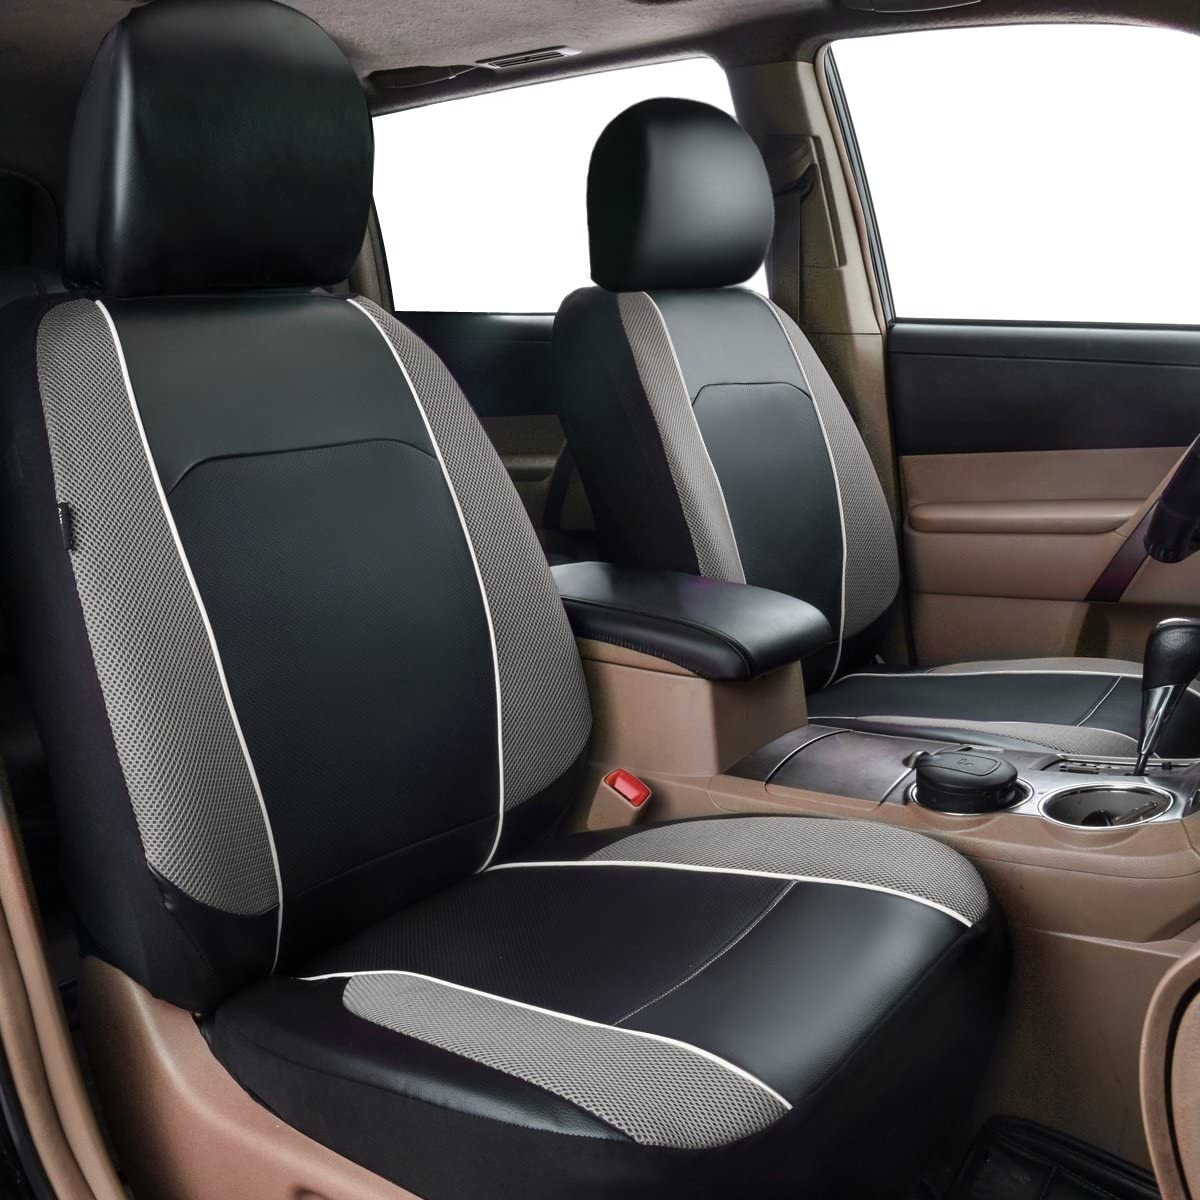 Trucks HORSE KINGDOM Universal Car Seat Covers Faux Leather with Air-mesh Pink for Women Girls Cars Suvs Sedans Aibag Compatible Black with Pink